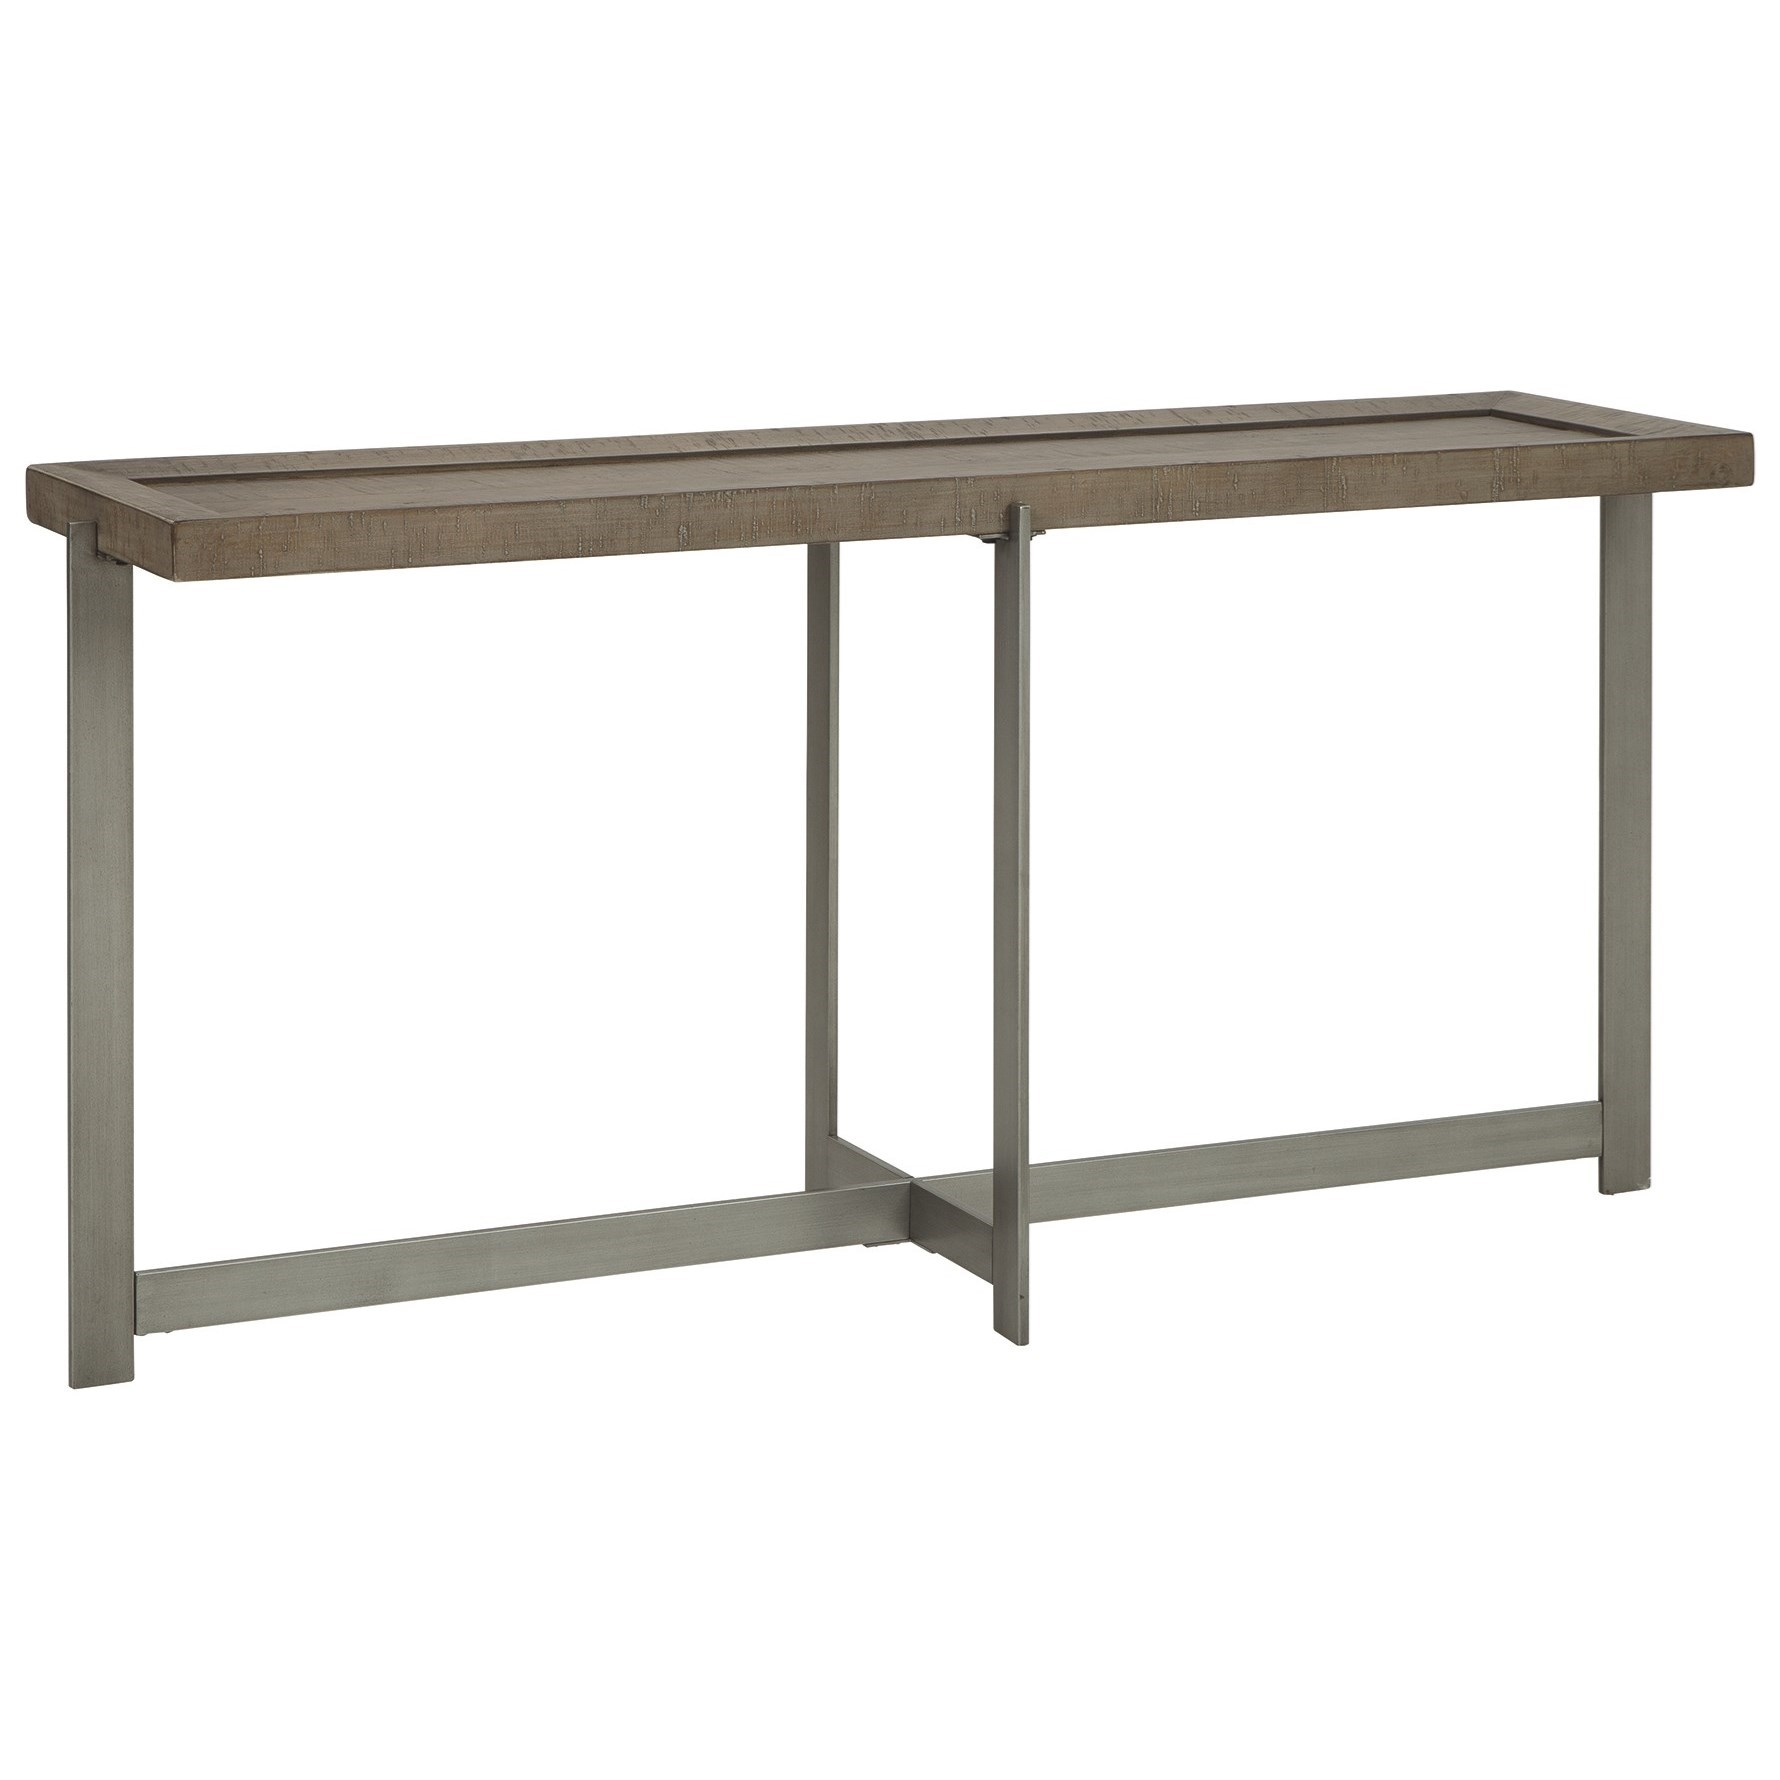 Krystanza Console Table by Signature Design by Ashley at Beck's Furniture